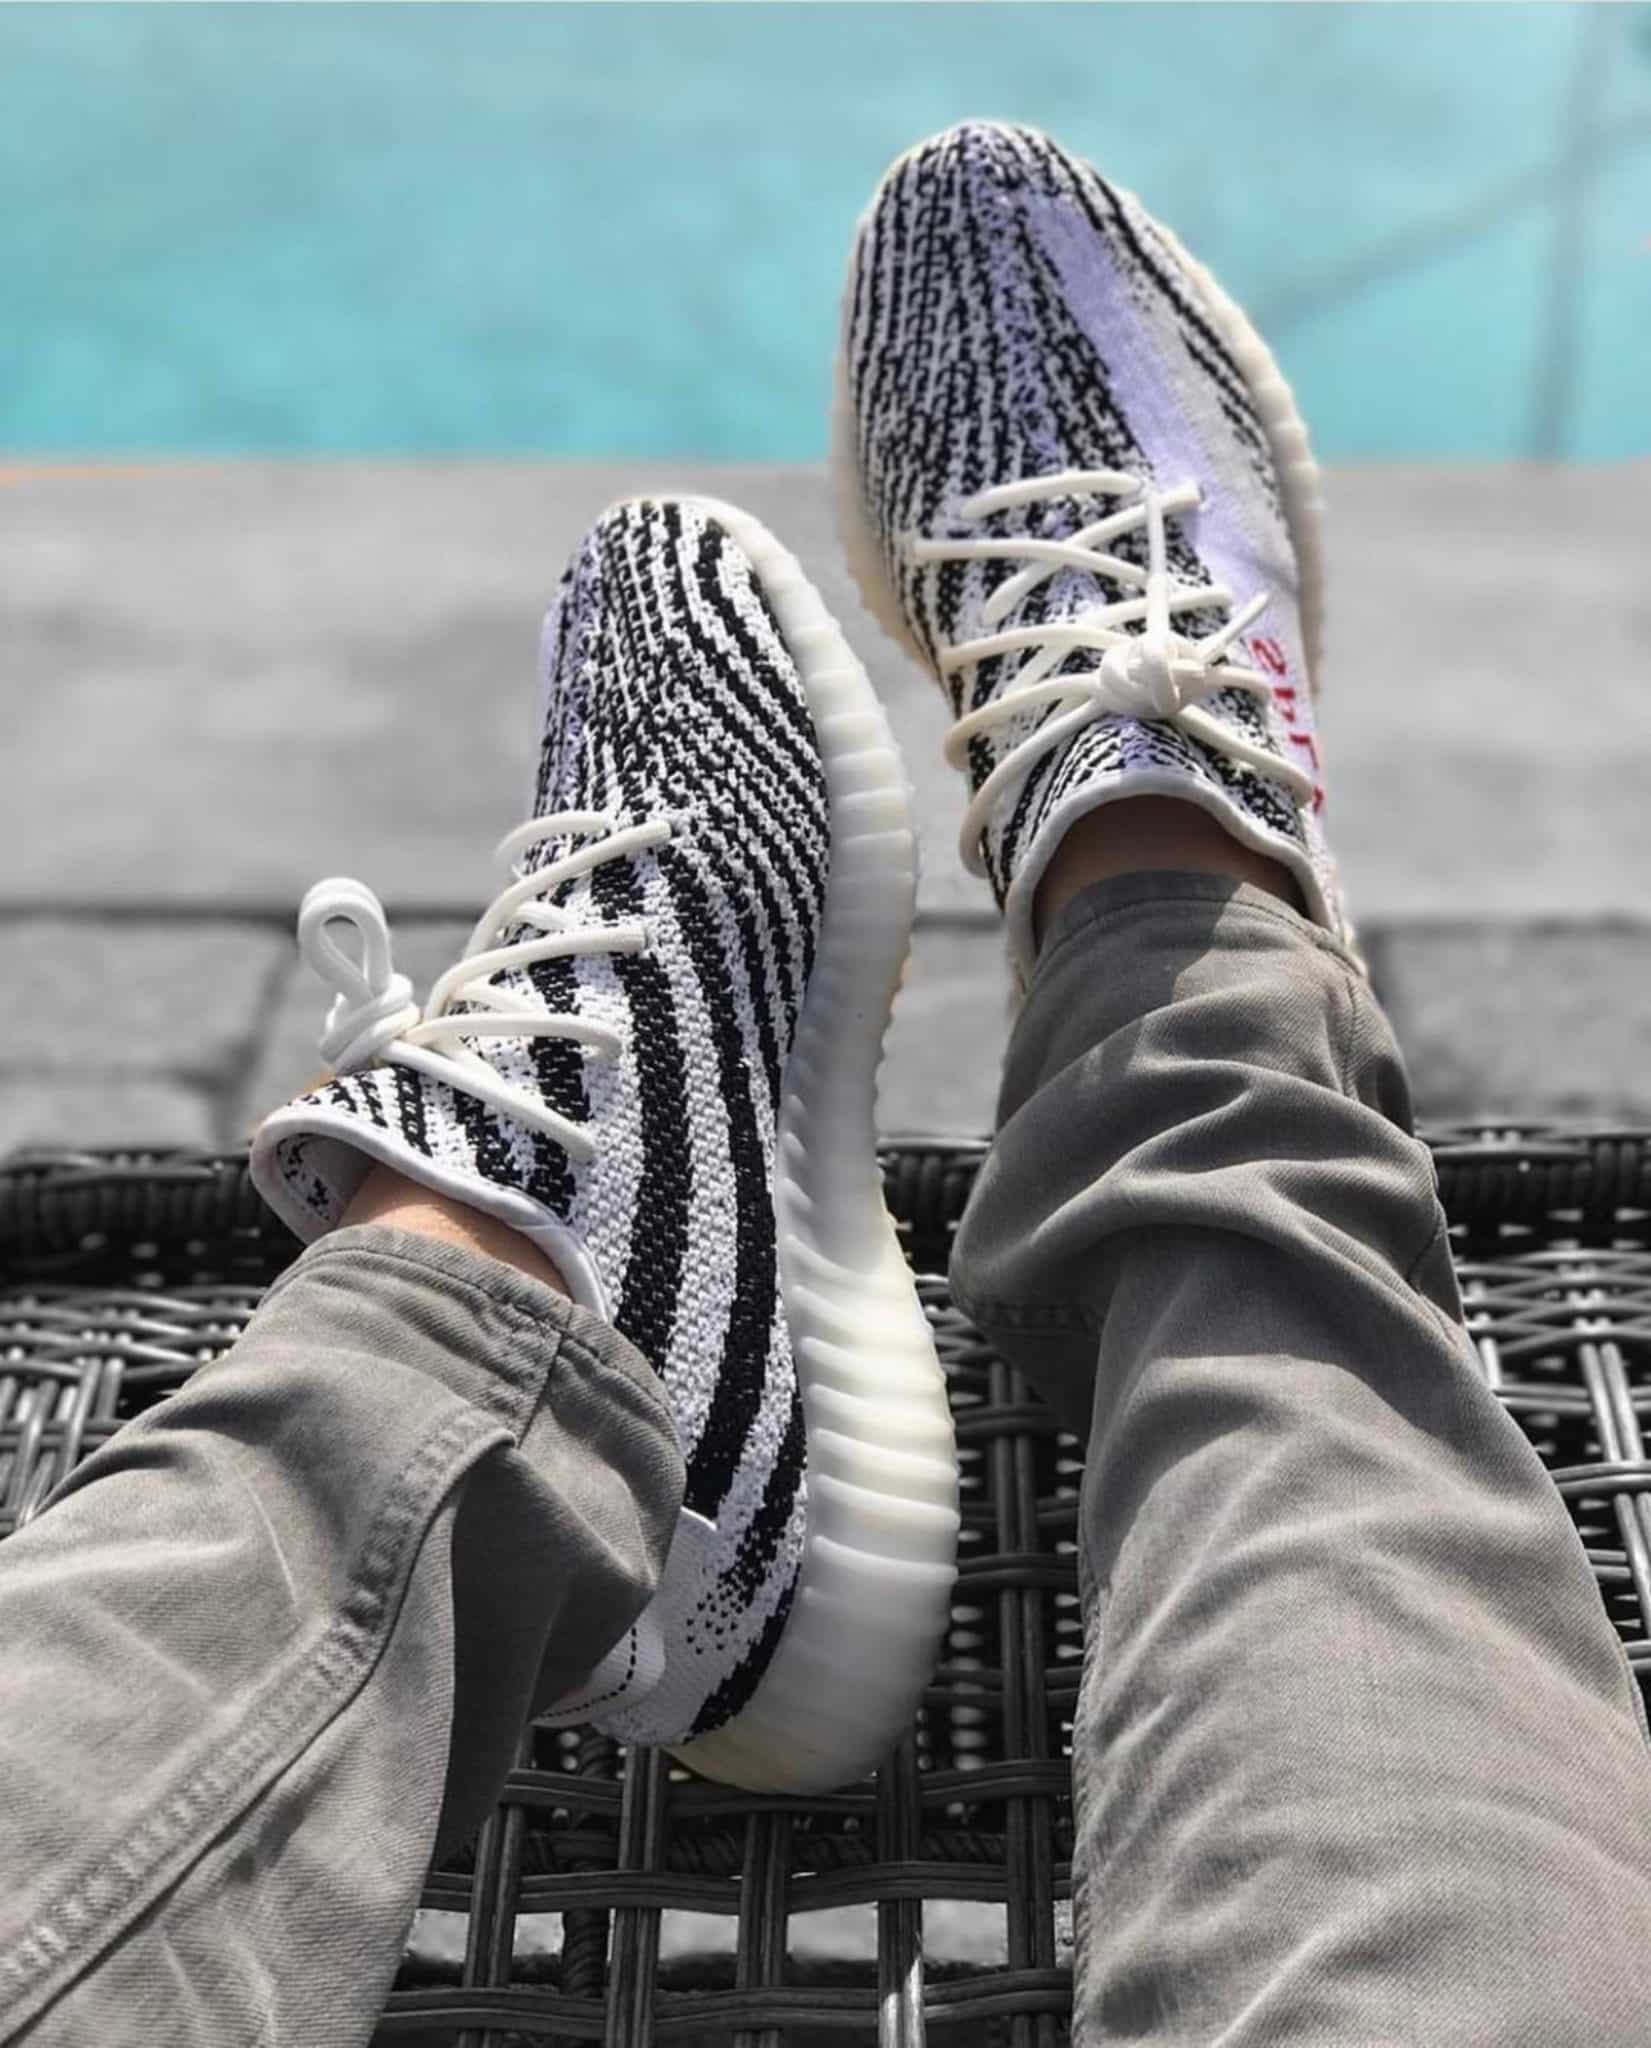 yeezy 350 v2 zebra on feet image via hfdfcxgs1030